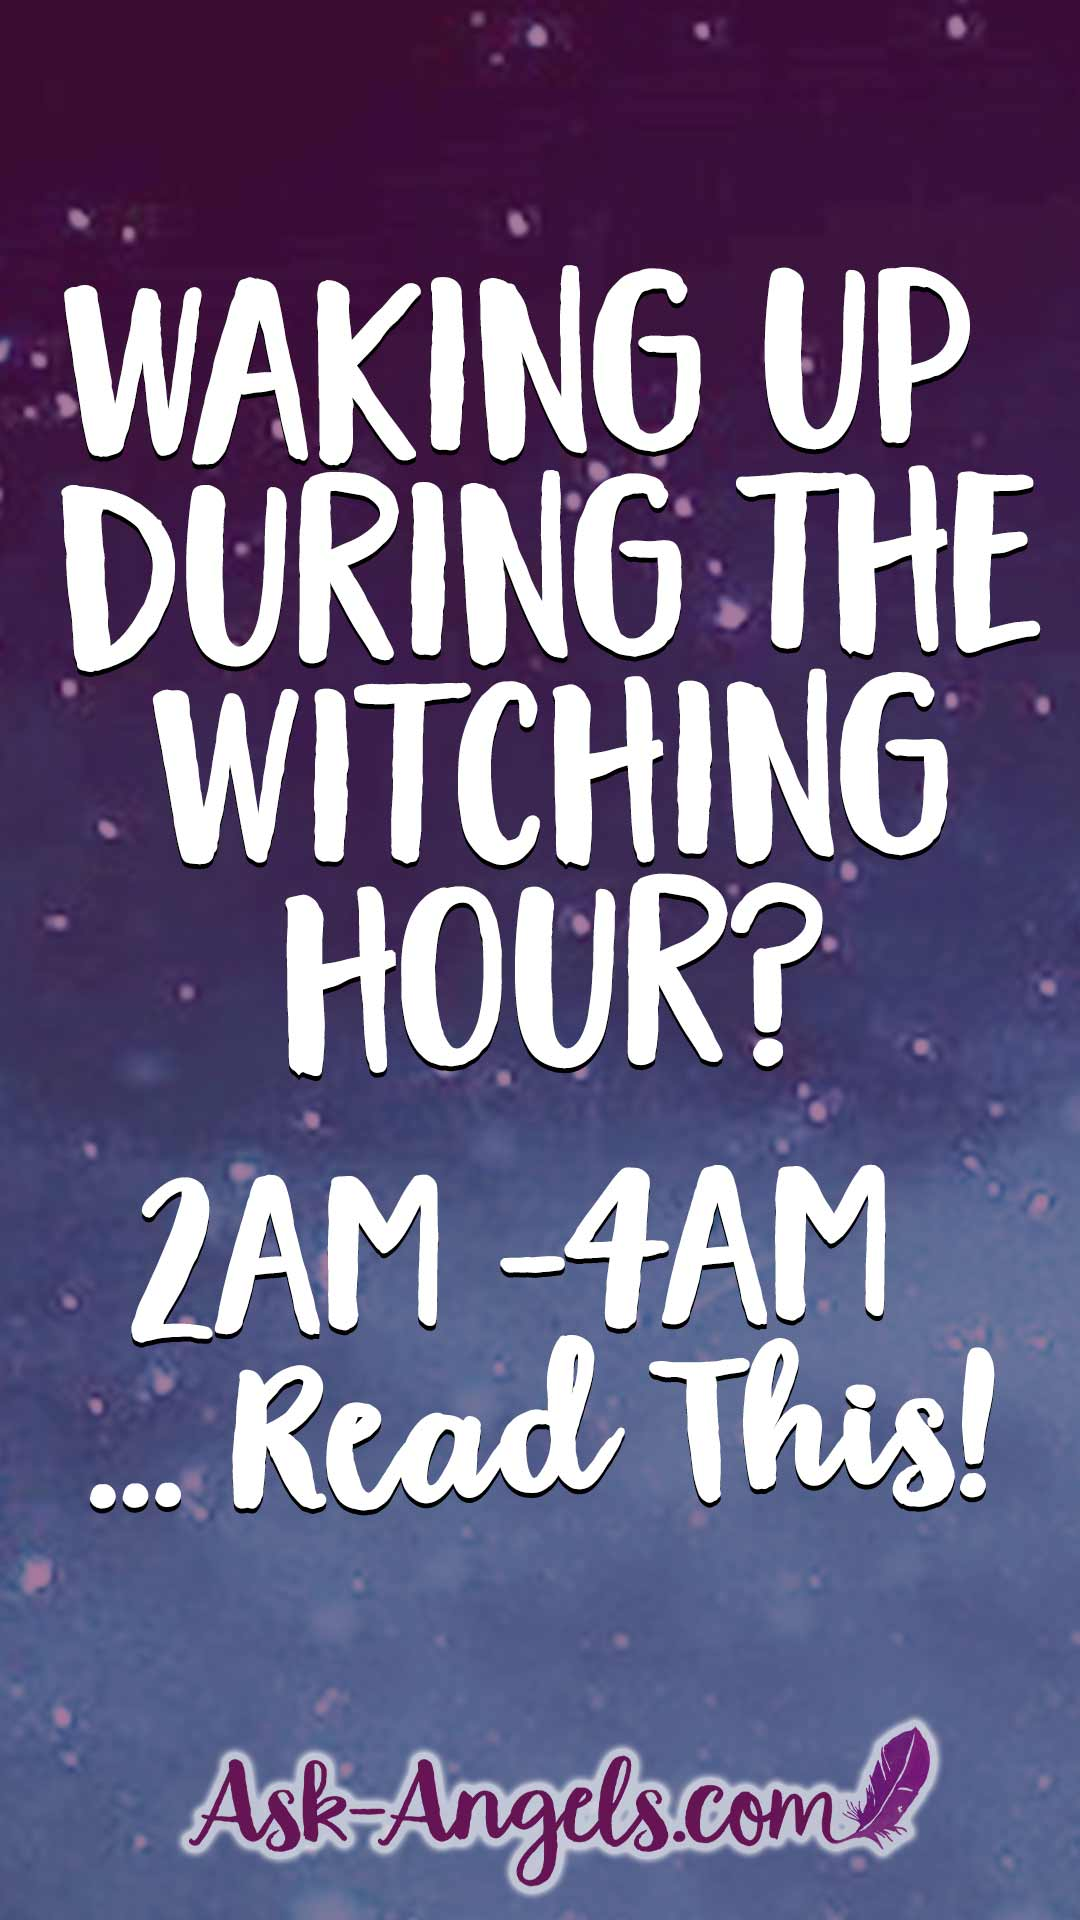 Waking Up During the Witching Hour? Read This!